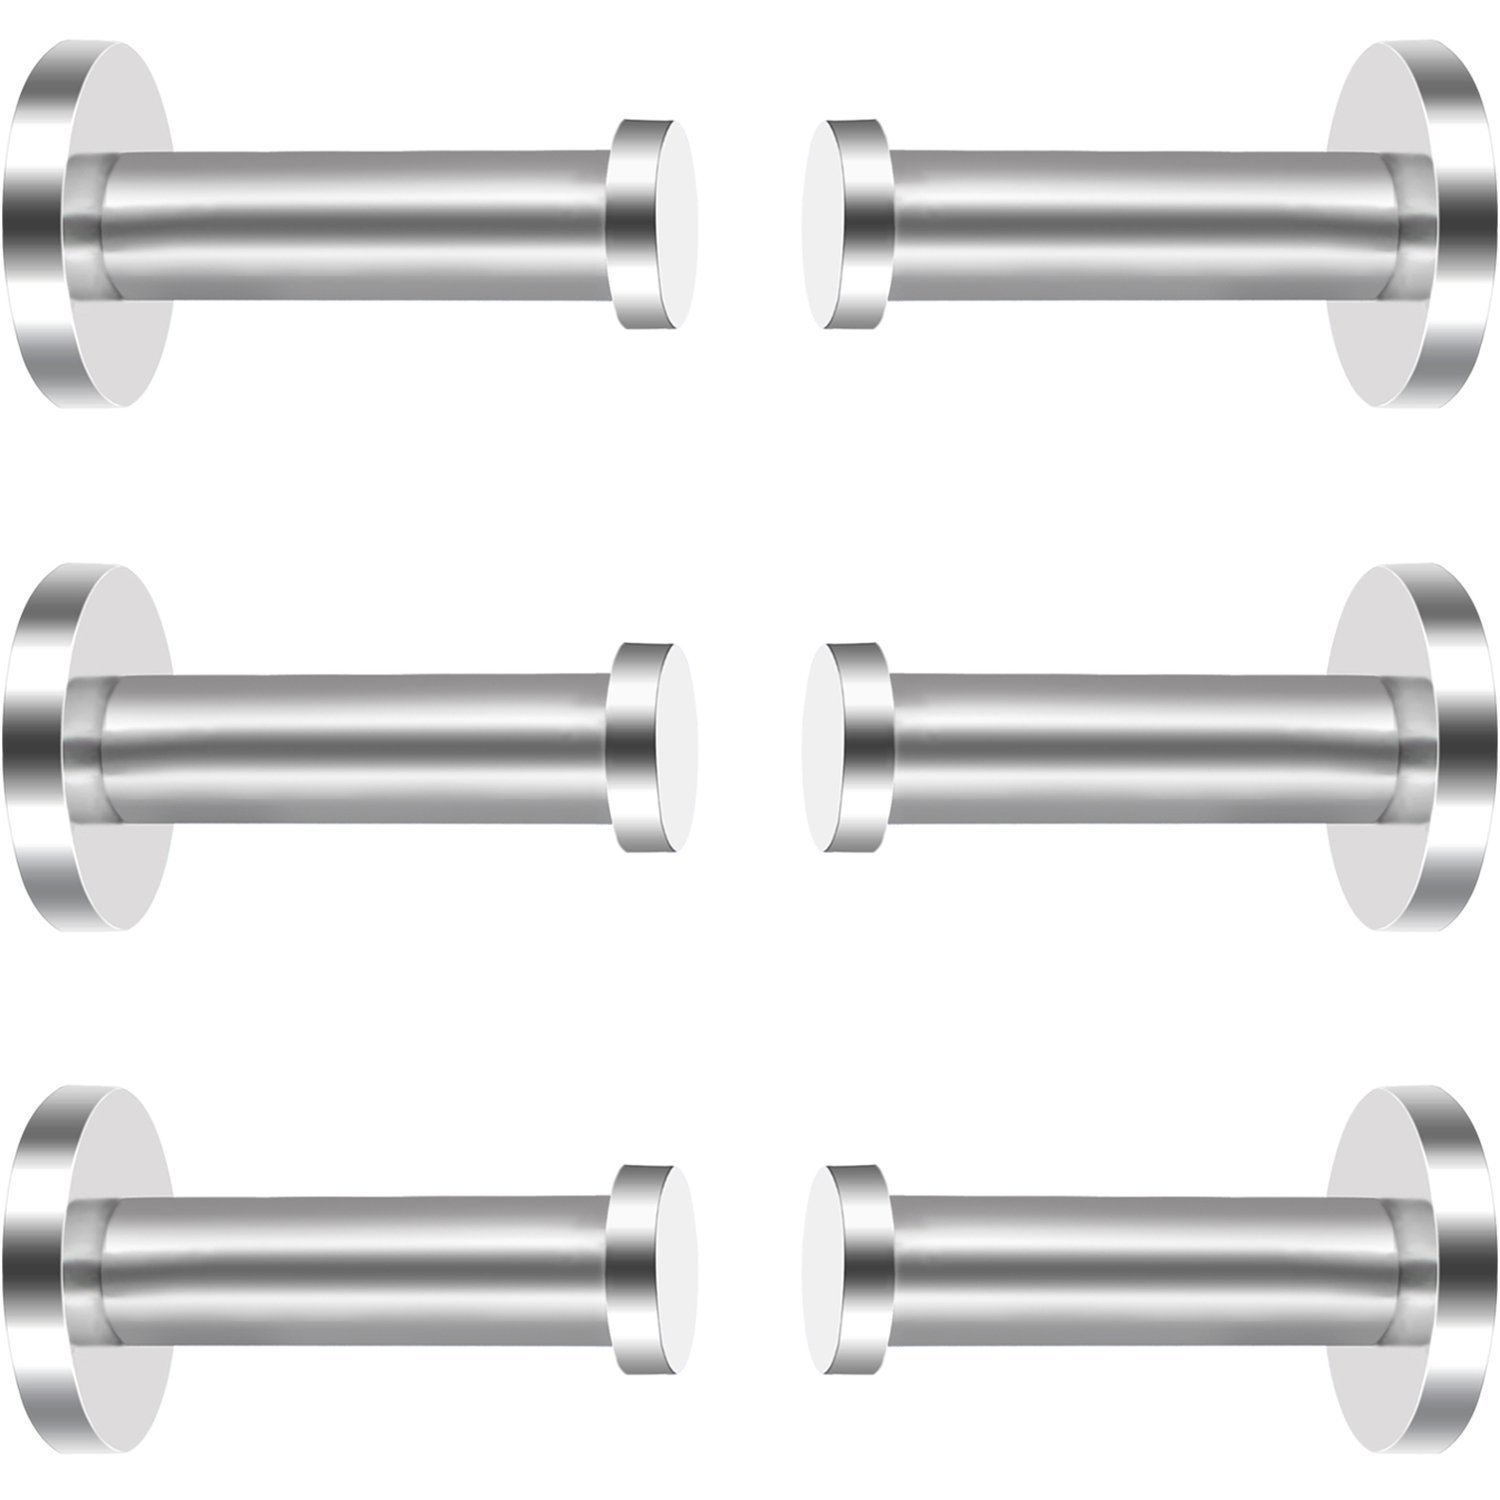 eBoot 6 Pieces Stainless Steel Wall-Mount Robe Hook Coat Hook Towel Wall Hook, Brushed Nickel (2 Inch)